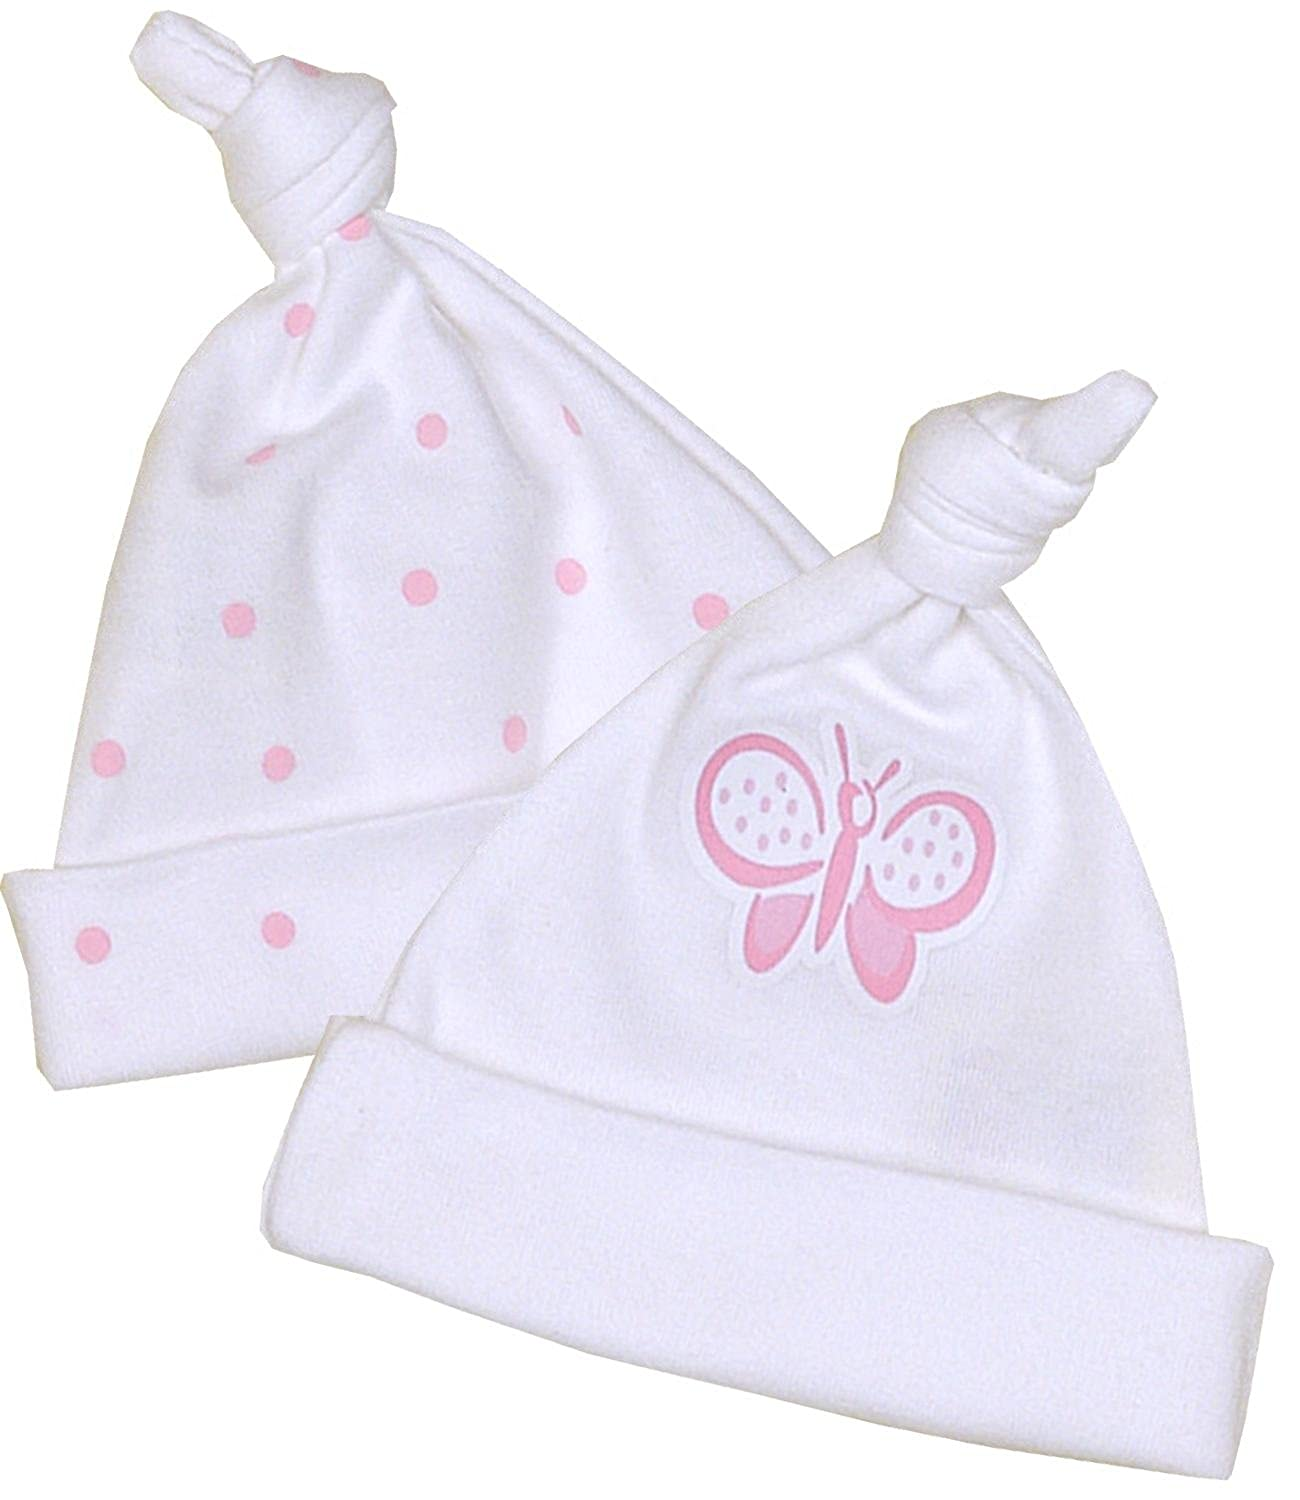 BabyPrem Premature Baby Pack of 2 Knotted Hats Girls Pink 1.5-7.5lb